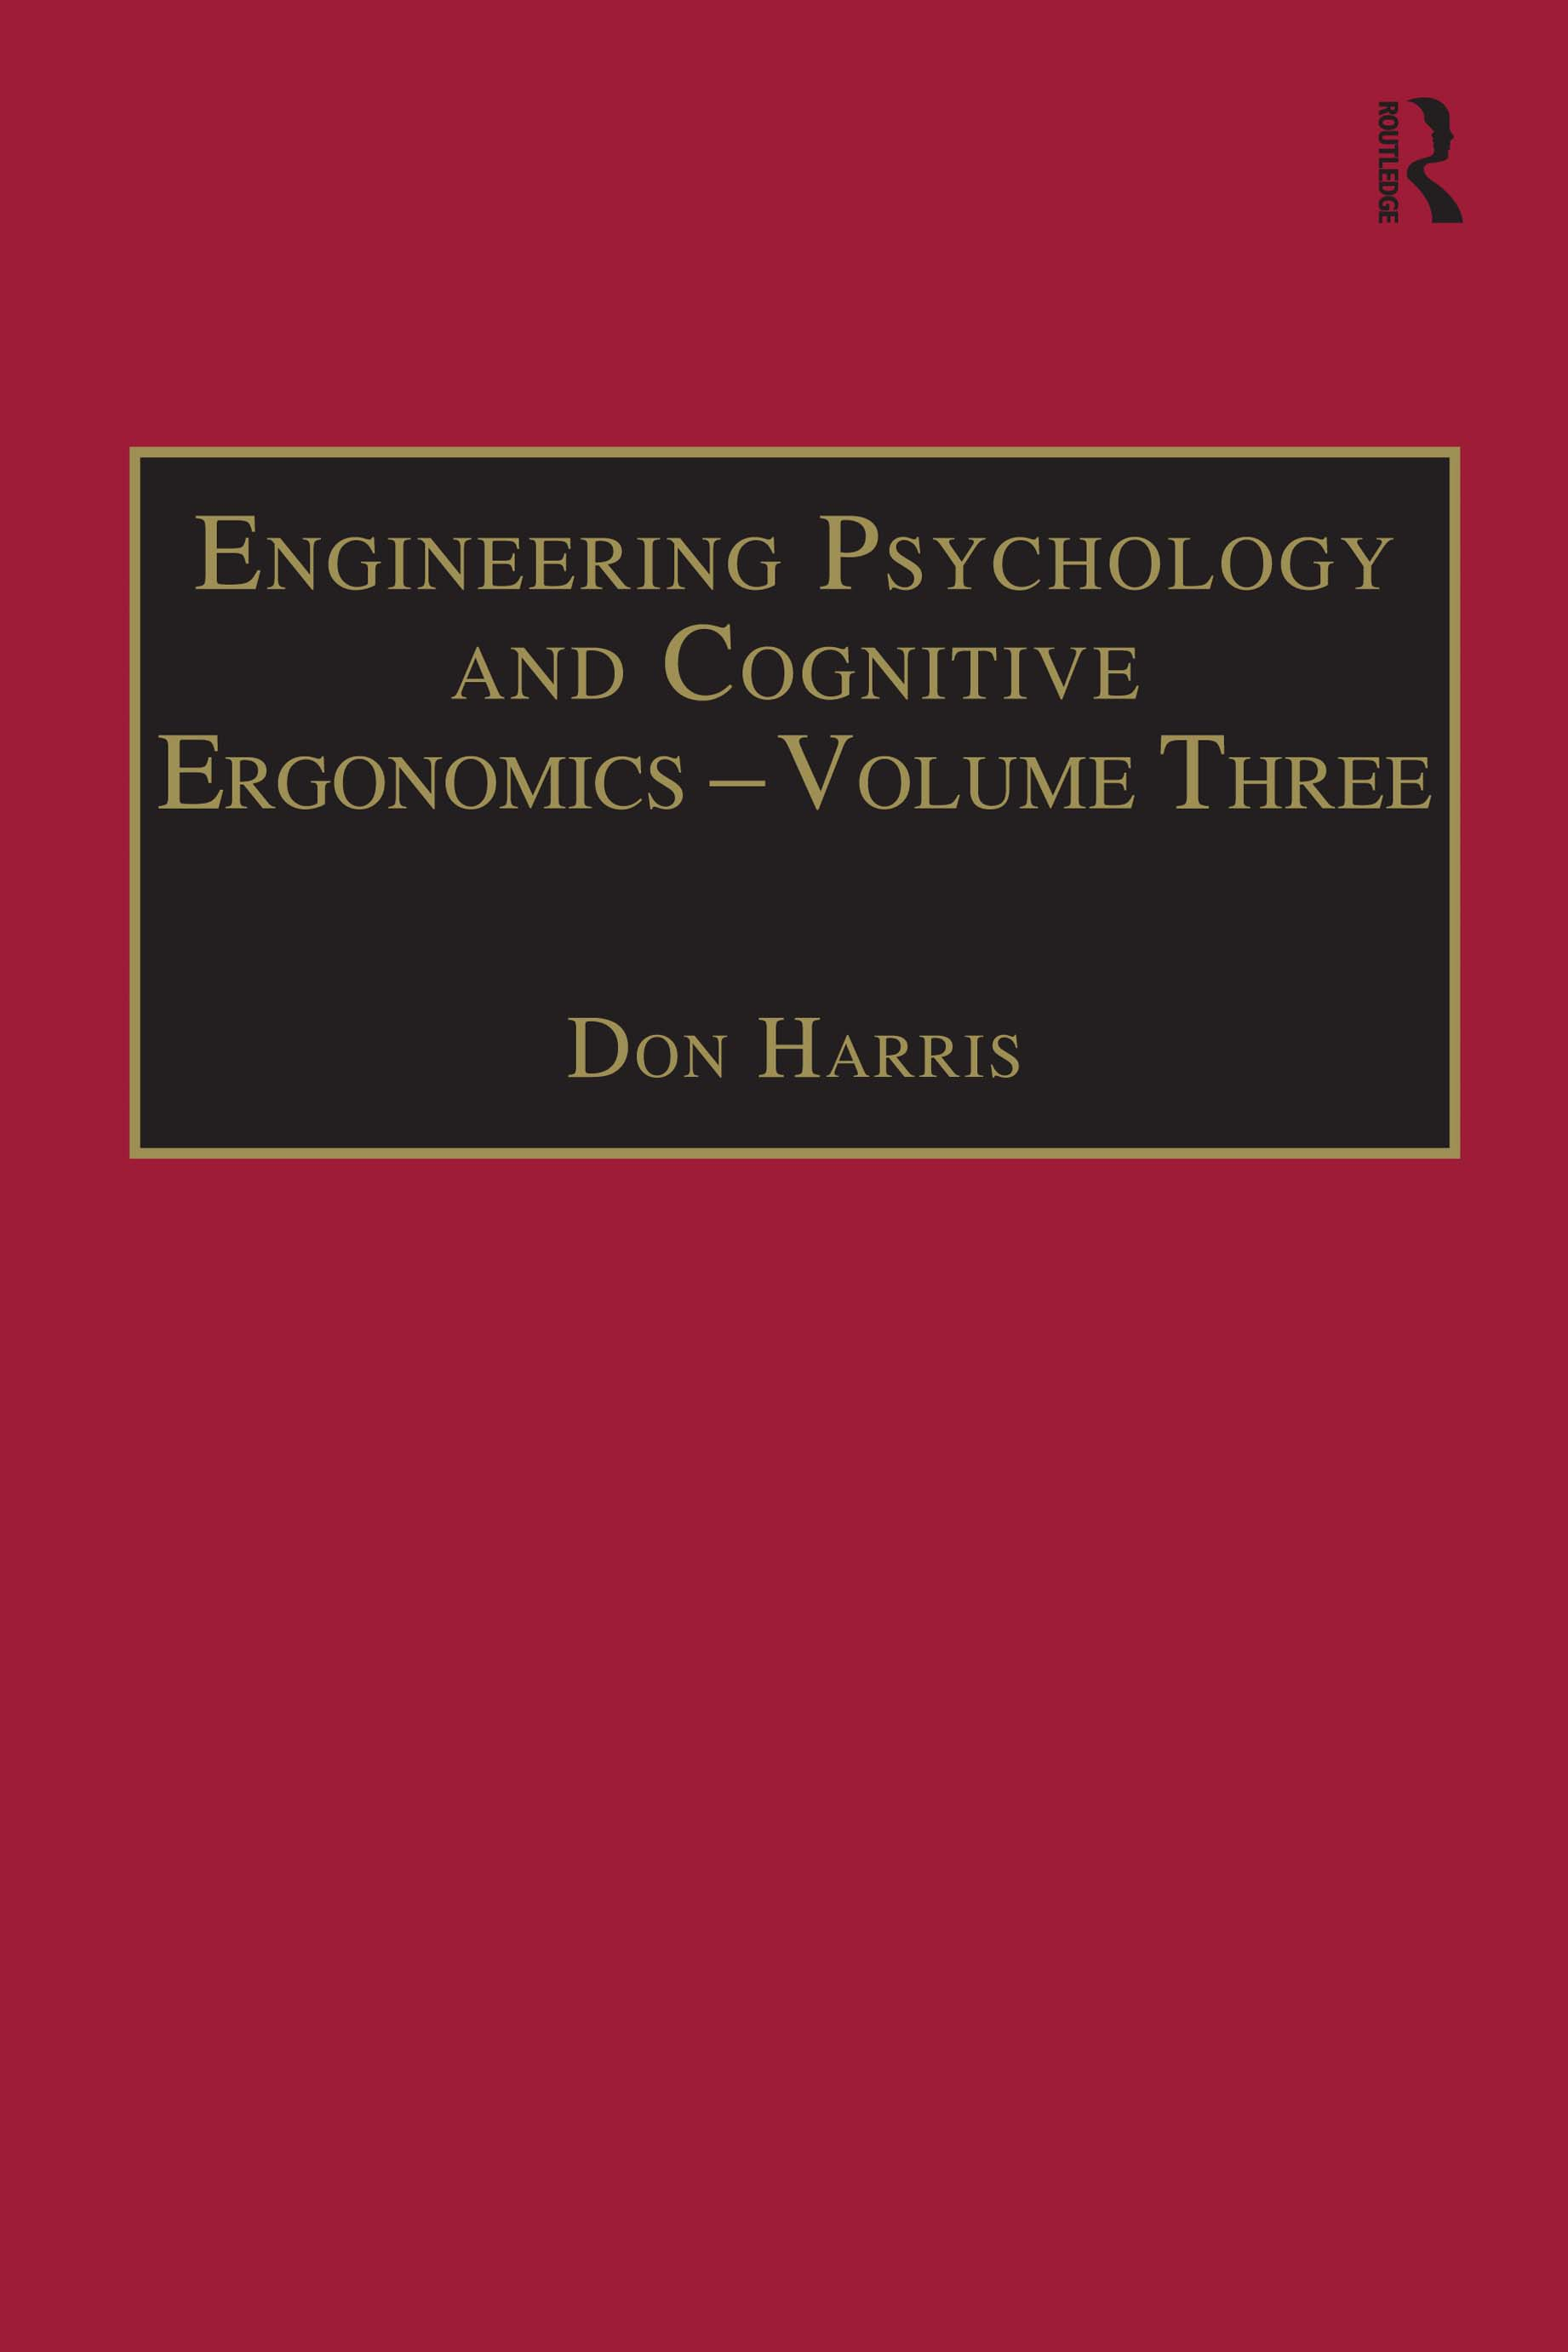 Engineering Psychology and Cognitive Ergonomics: Volume 3: Transportation Systems, Medical Ergonomics and Training book cover